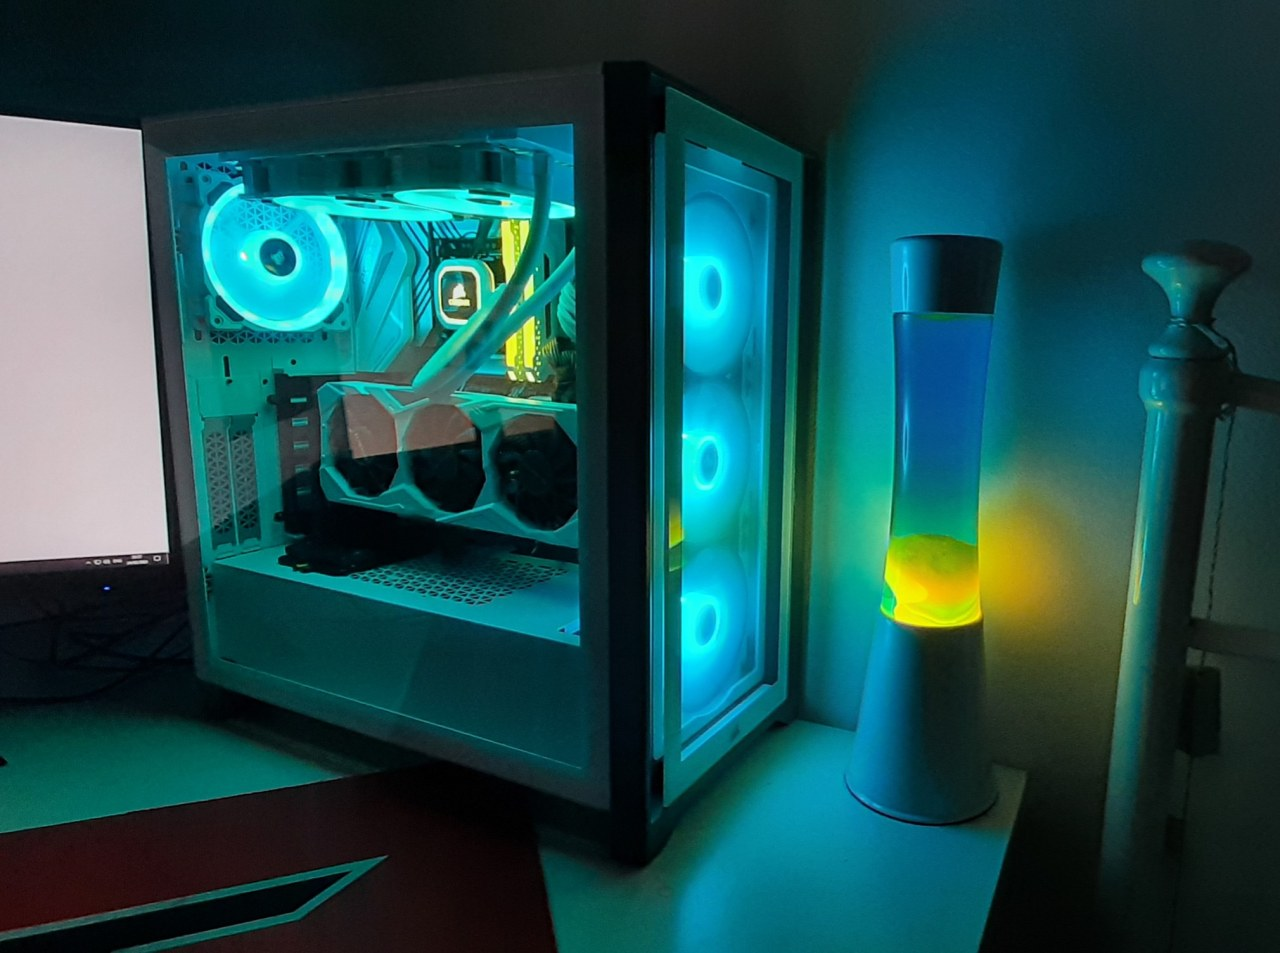 Lockdown No.3 project finished and I'm very happy with how it turned out, matches my lava lamp quite well I think! #pcmasterrace#computer#technology#tech#amd#nvidia#intel#gaming#gaming pc#gaming computer#ga